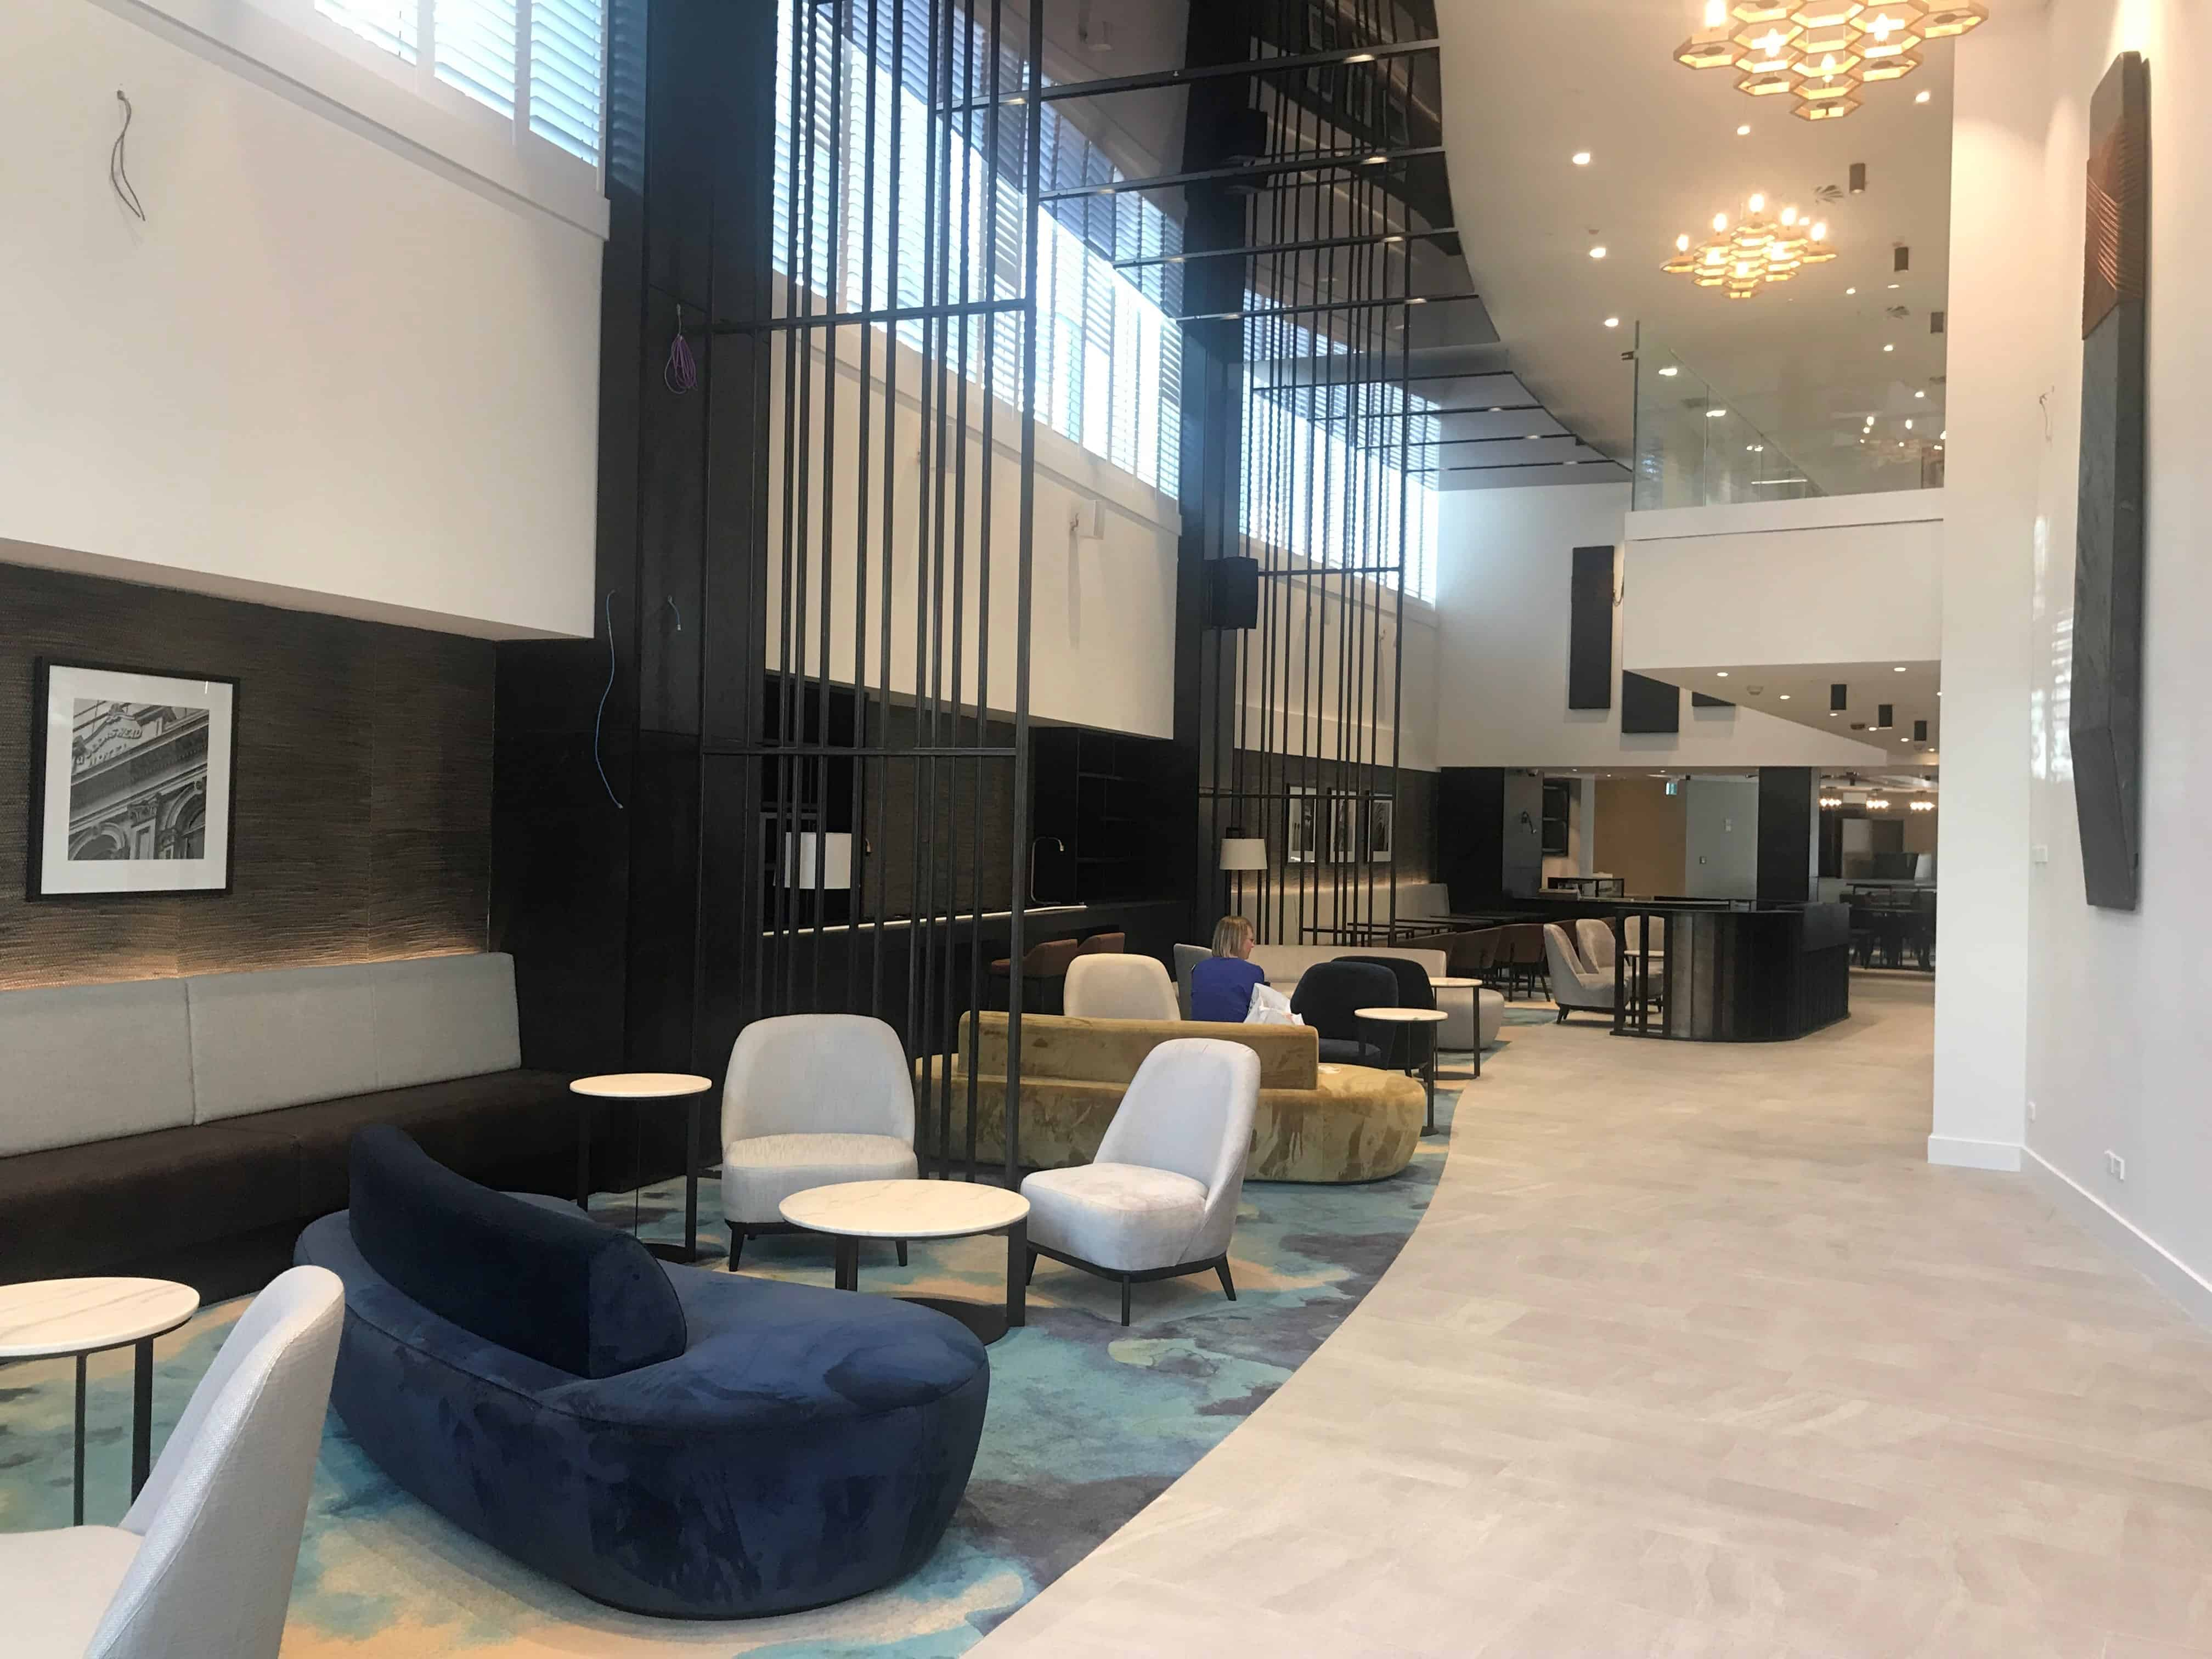 Sheraton Four Points hotel in Auckland foyer and bar design